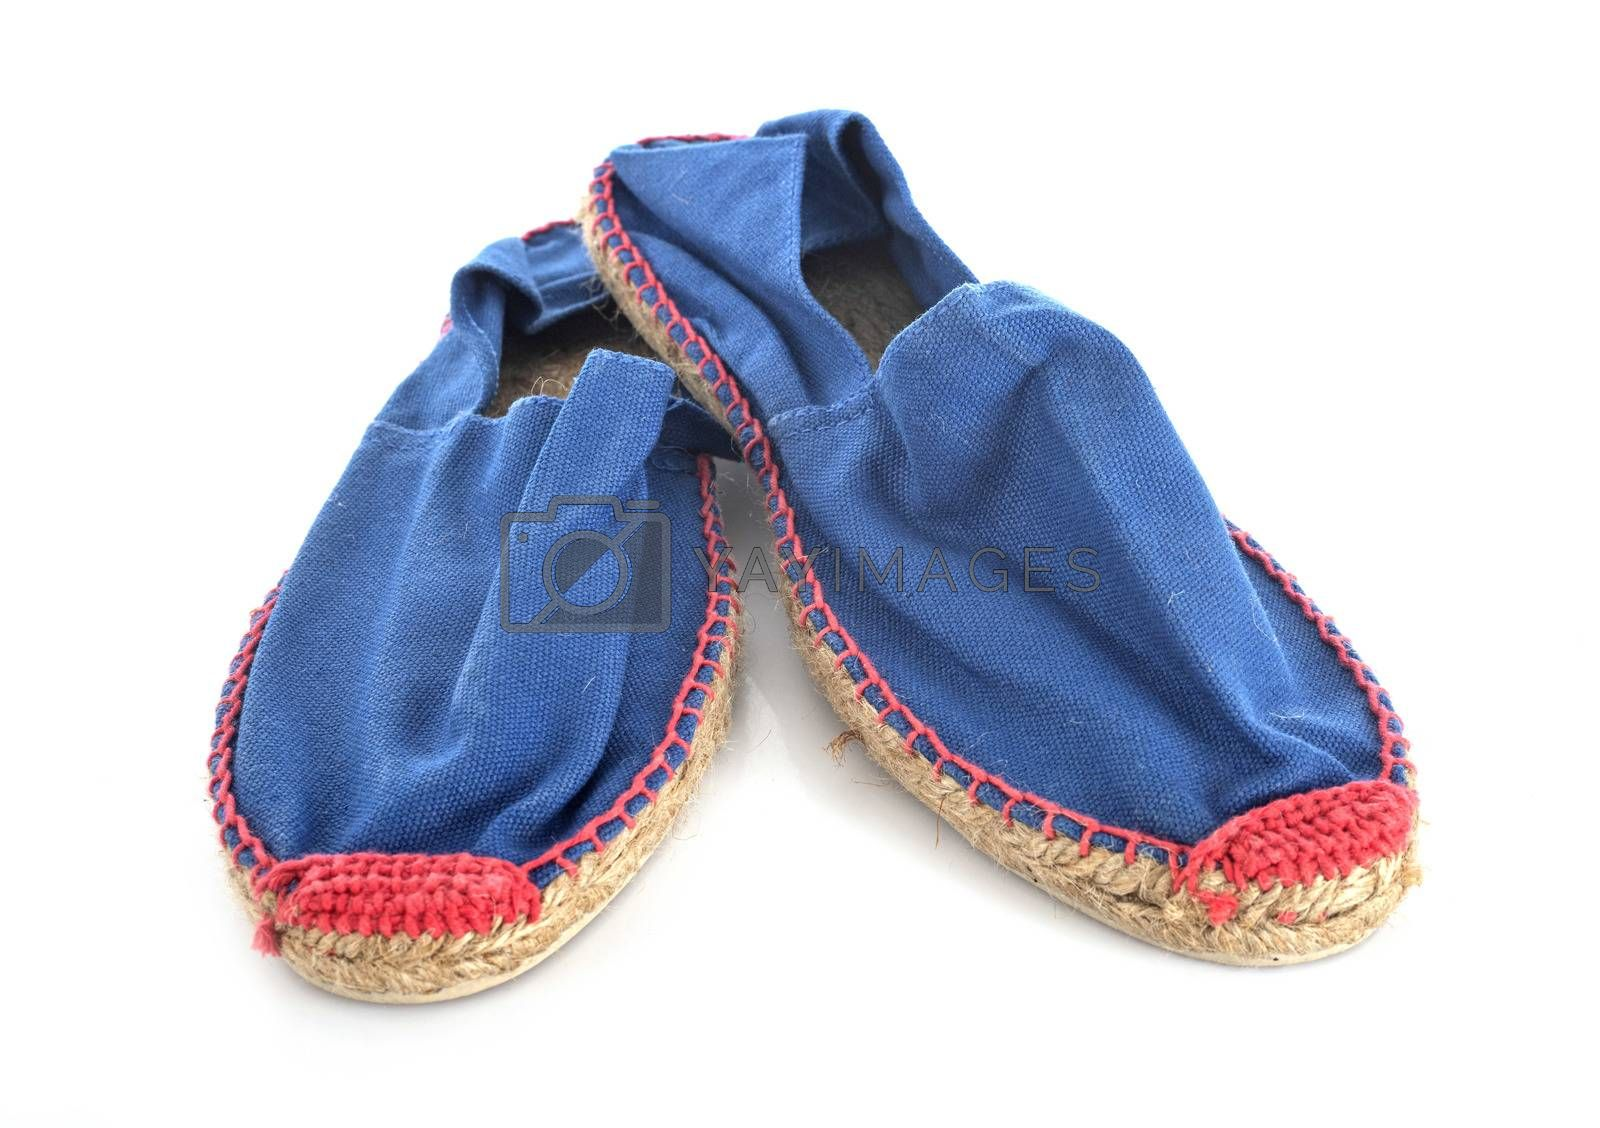 blue espadrille in front of white background